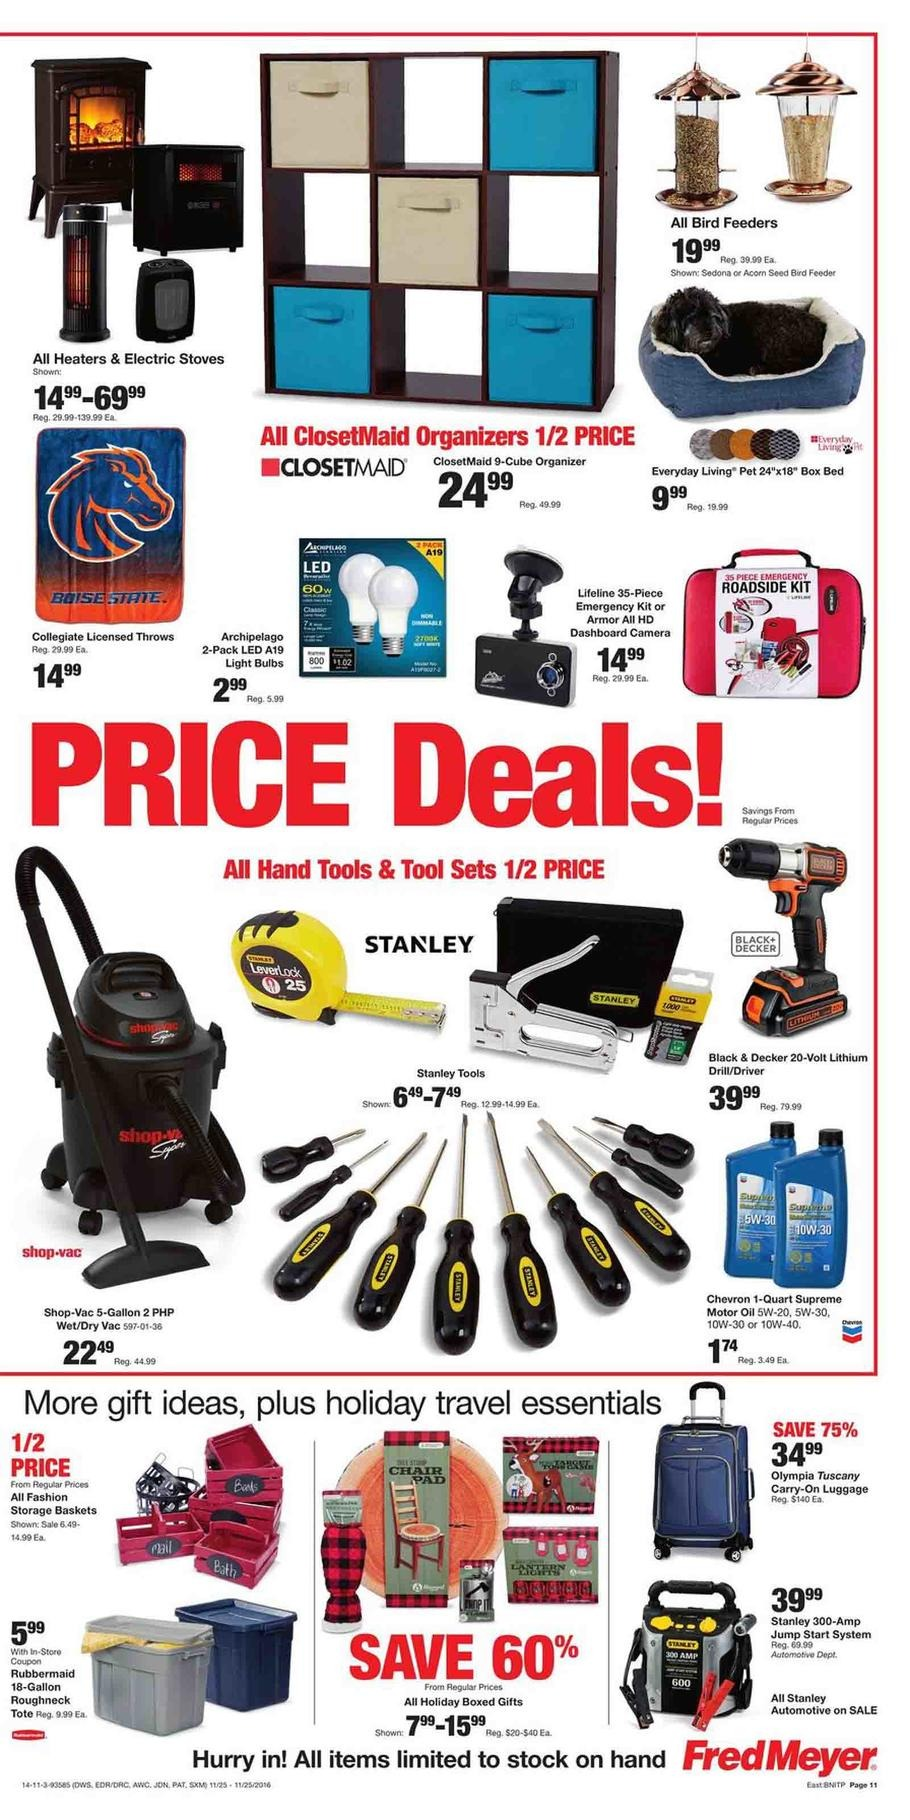 Fred Meyer Black Friday Ads Sales And Deals 2016 2017